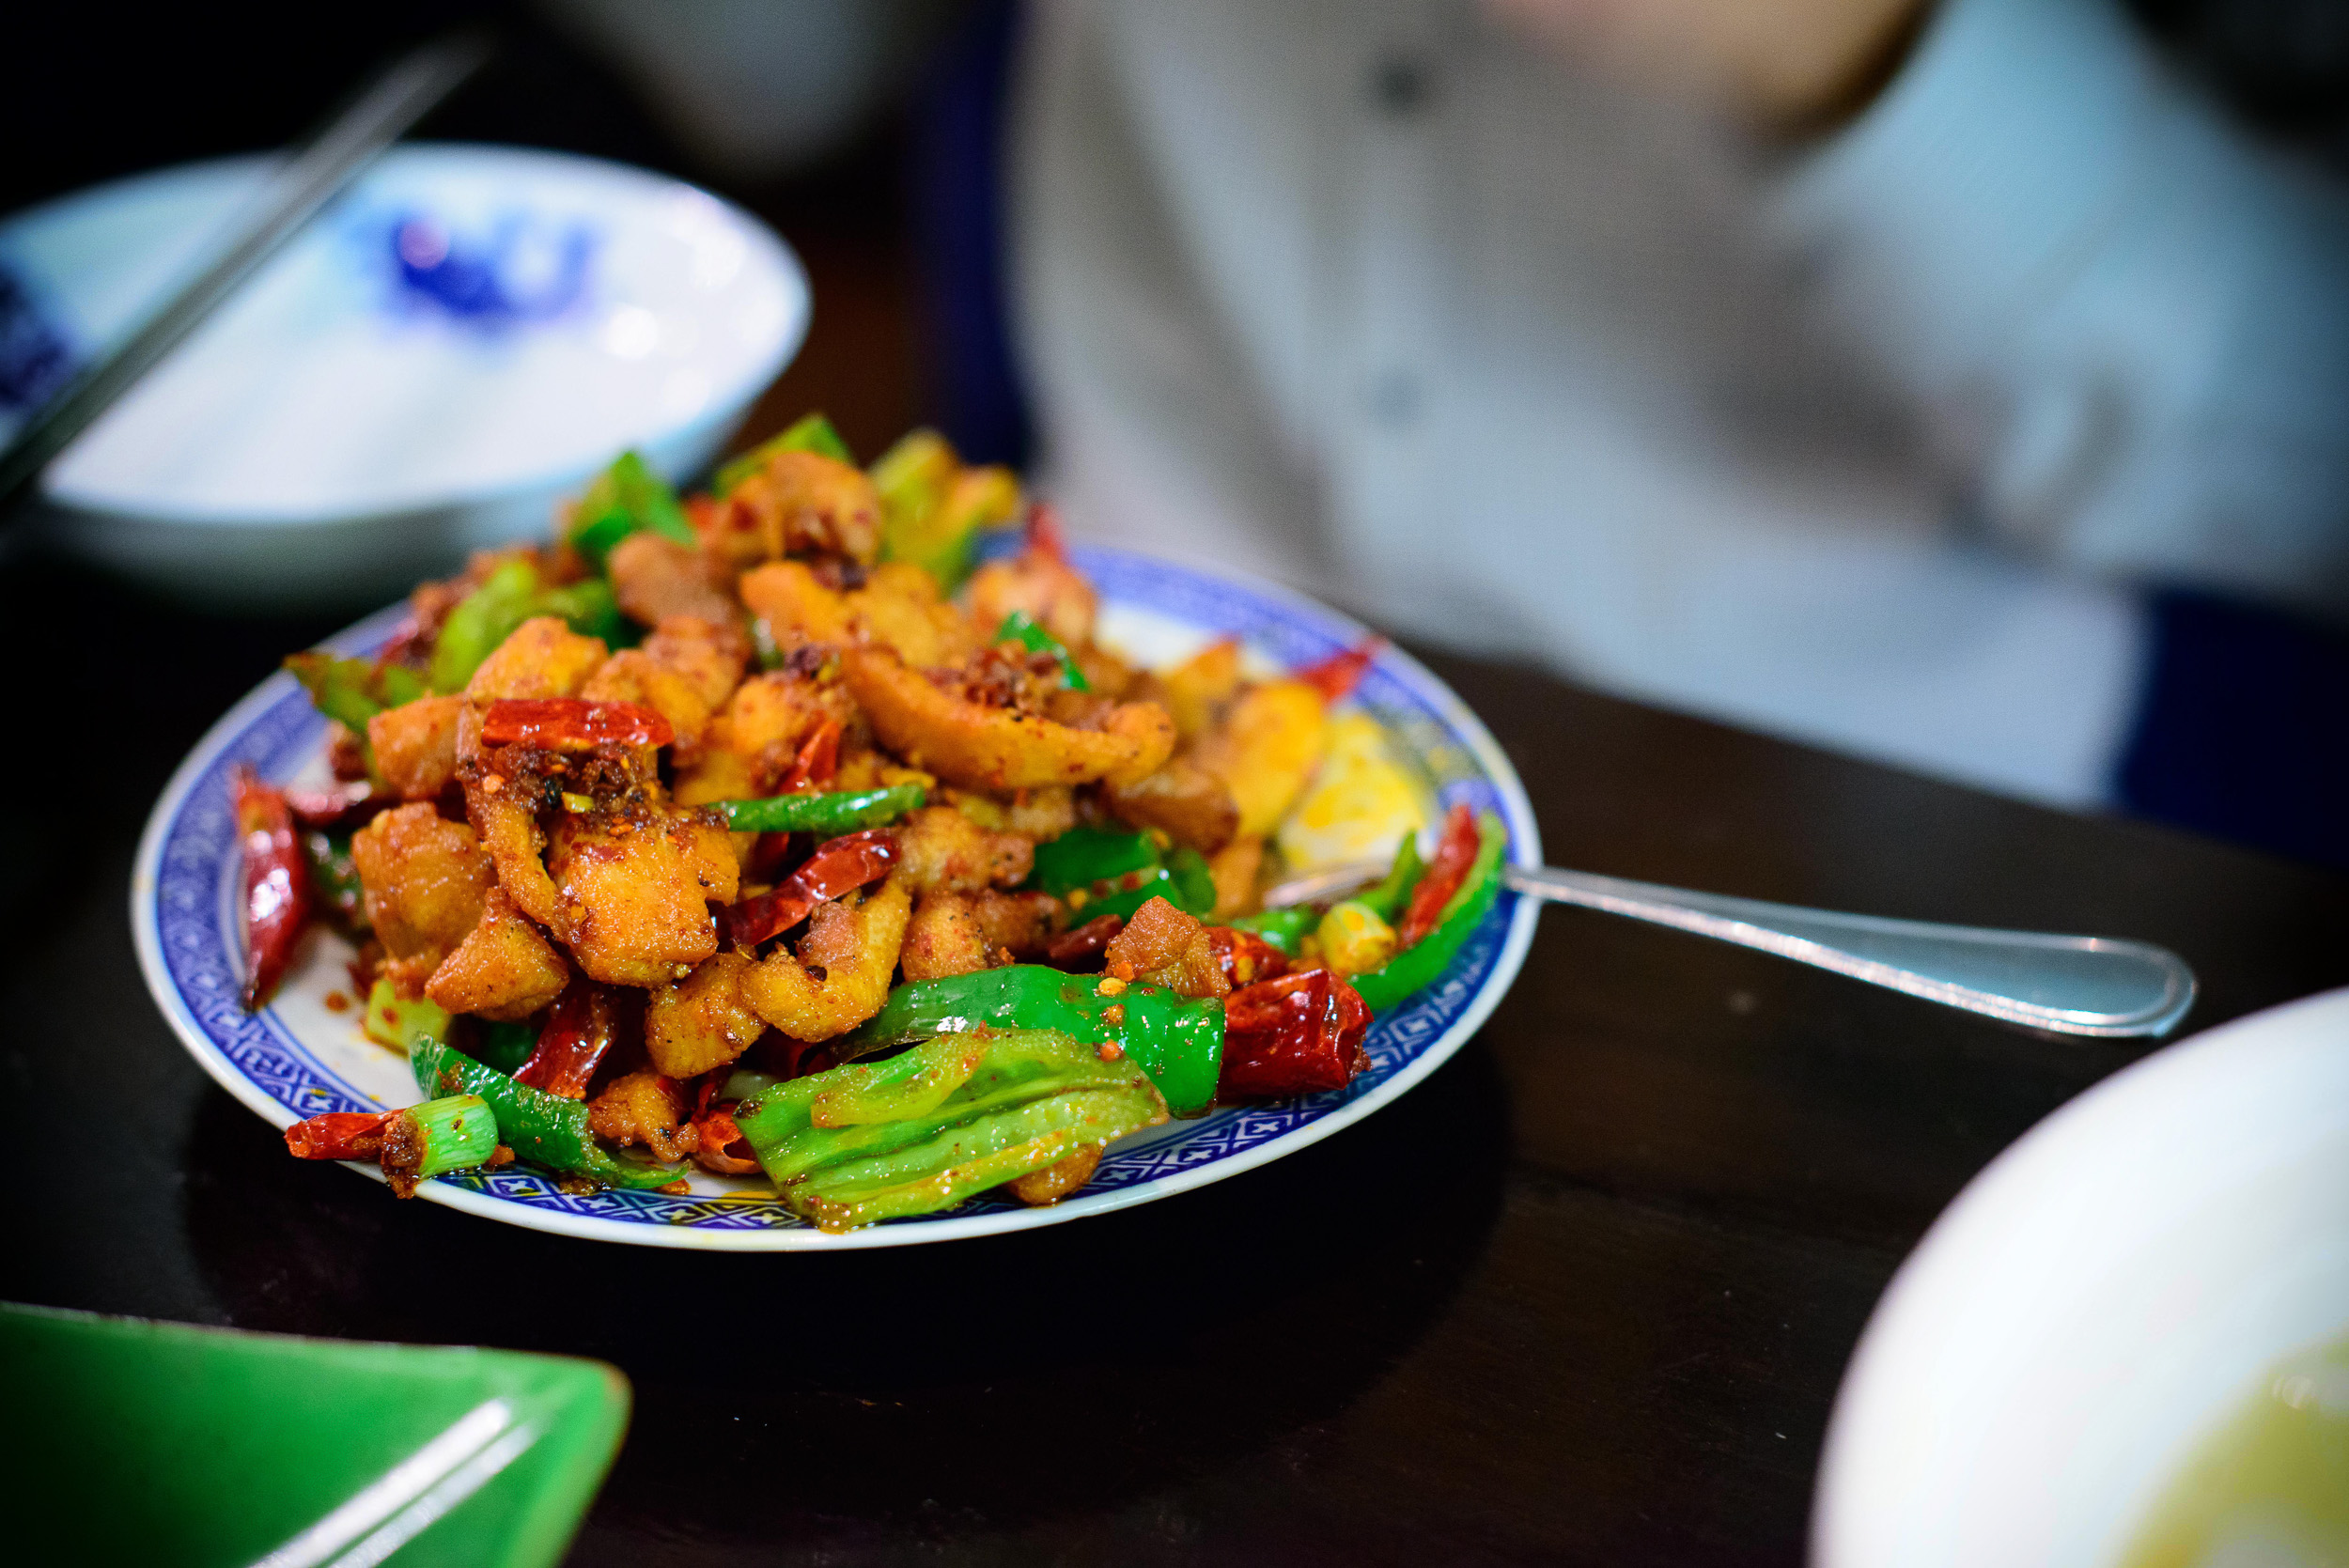 Three pepper chicken, stir-fried with red and green chili pepper